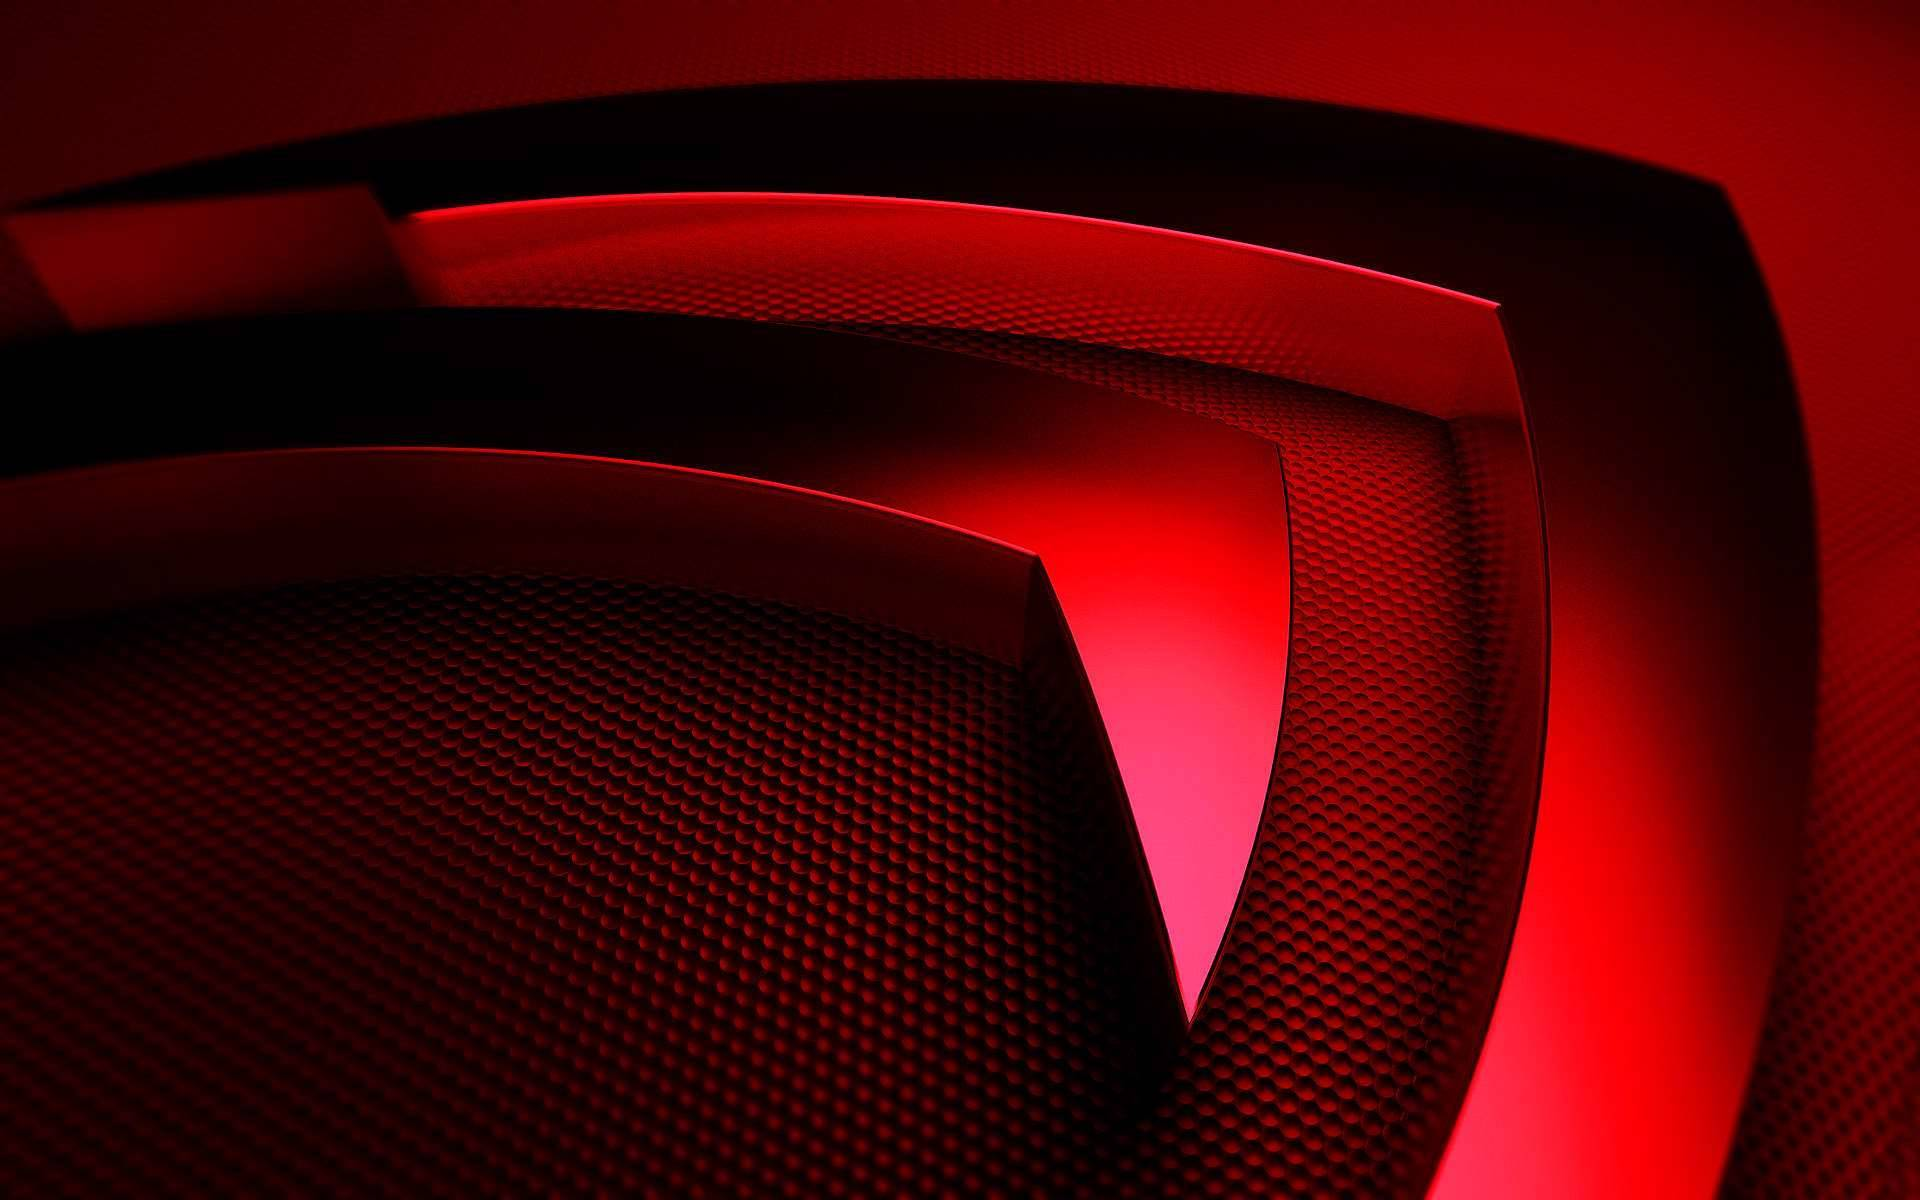 nvidia wallpaper 1080p red - photo #5